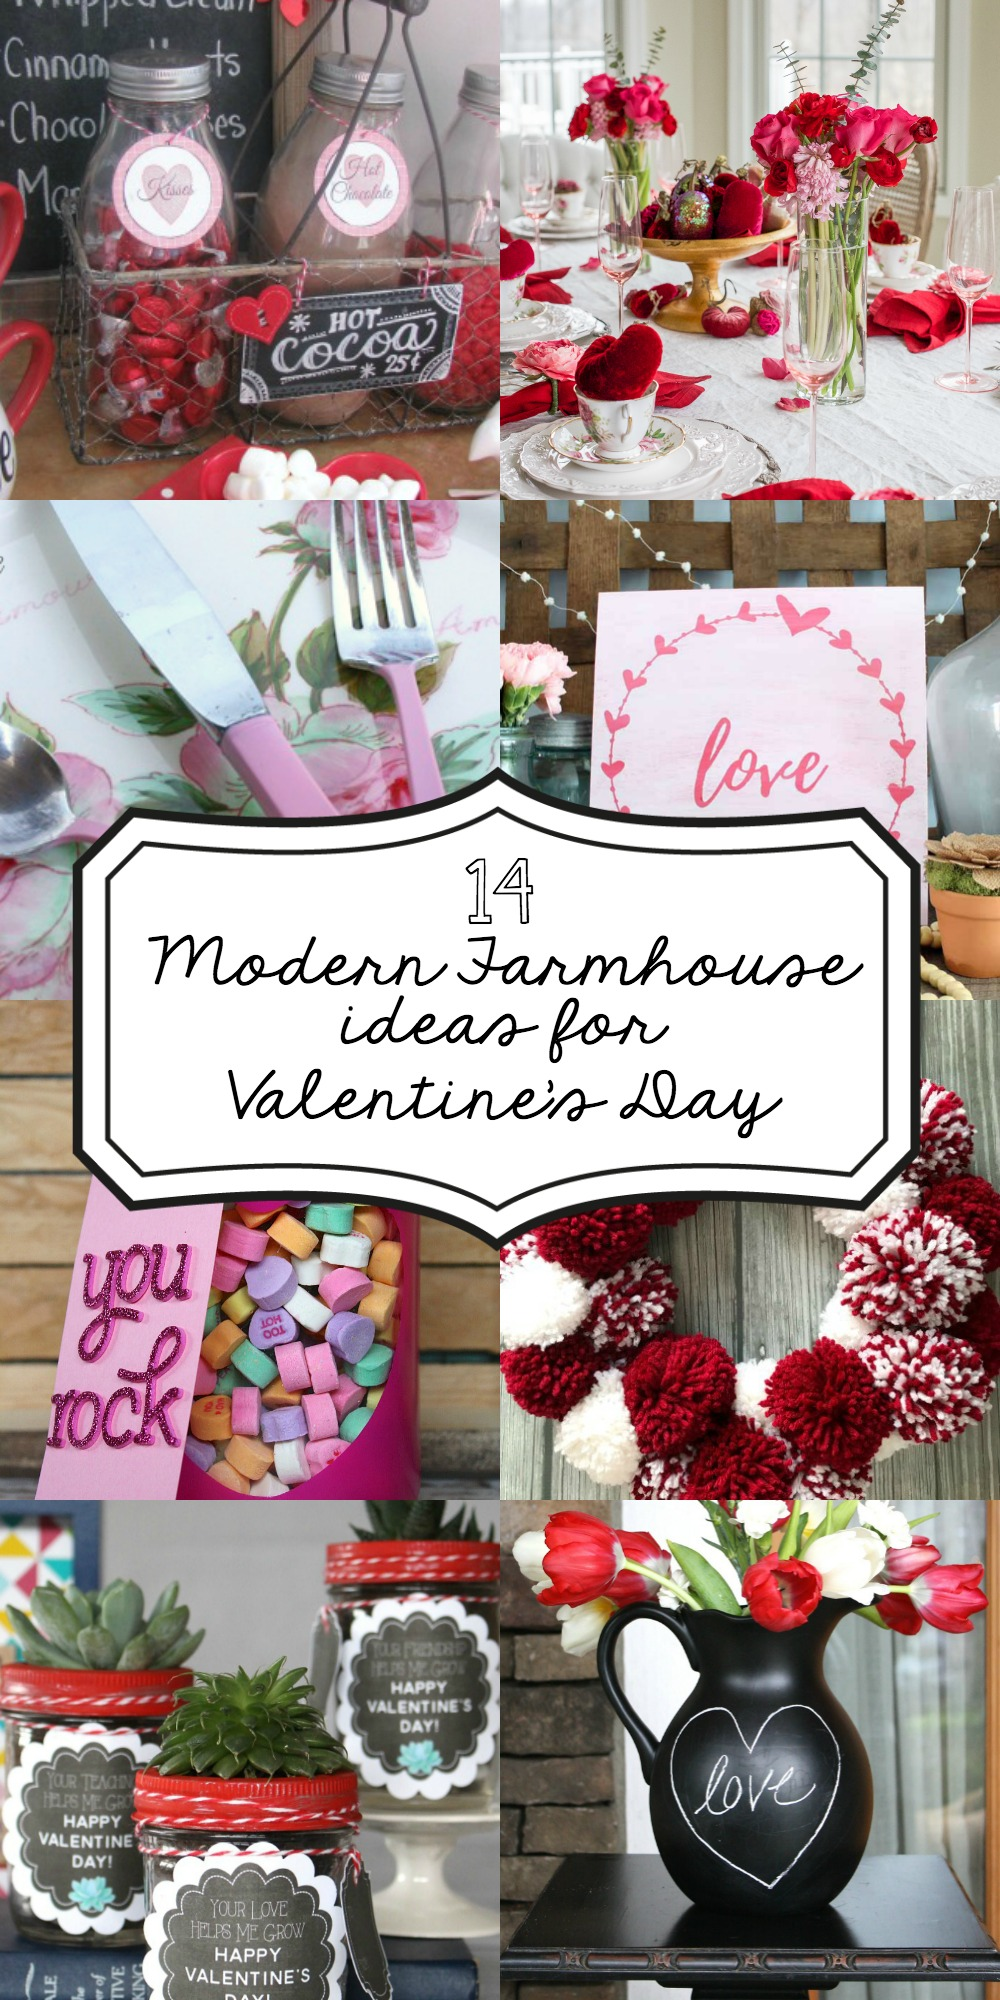 Fixer Upper Ideas for Valentine's Day